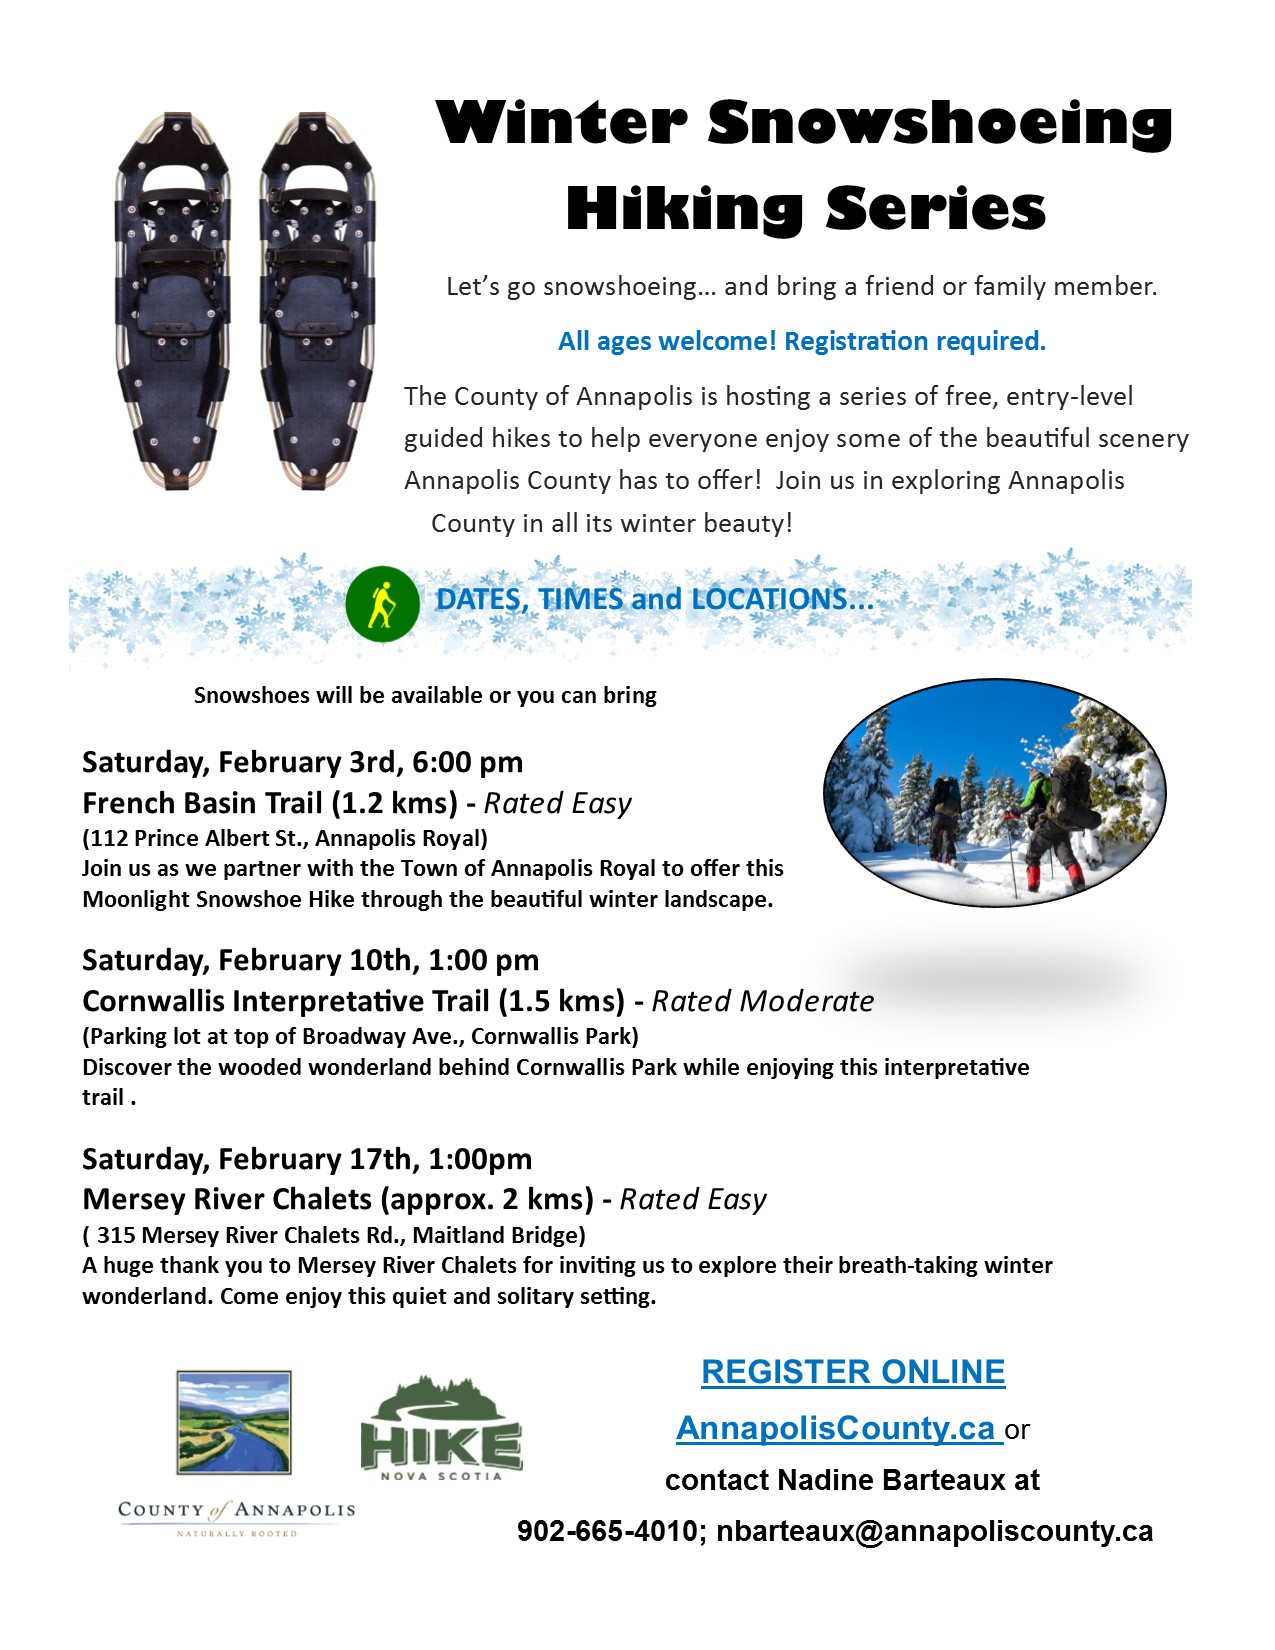 2018 Winter Snowshoeing Hiking Series poster